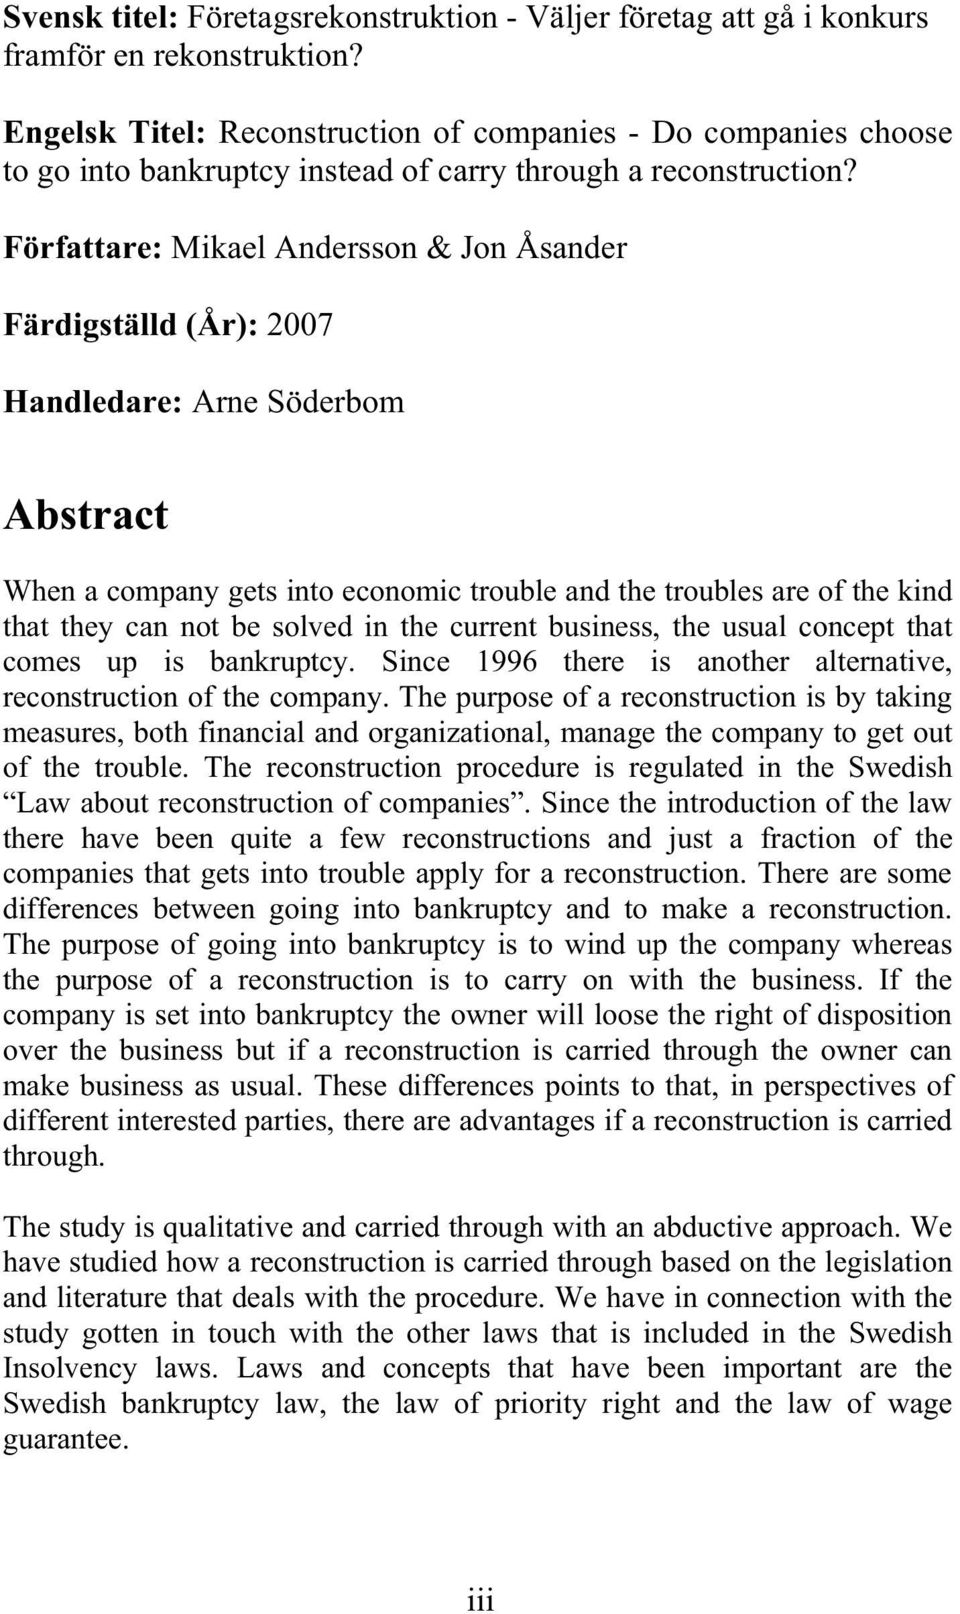 Författare: Mikael Andersson & Jon Åsander Färdigställd (År): 2007 Handledare: Arne Söderbom Abstract When a company gets into economic trouble and the troubles are of the kind that they can not be